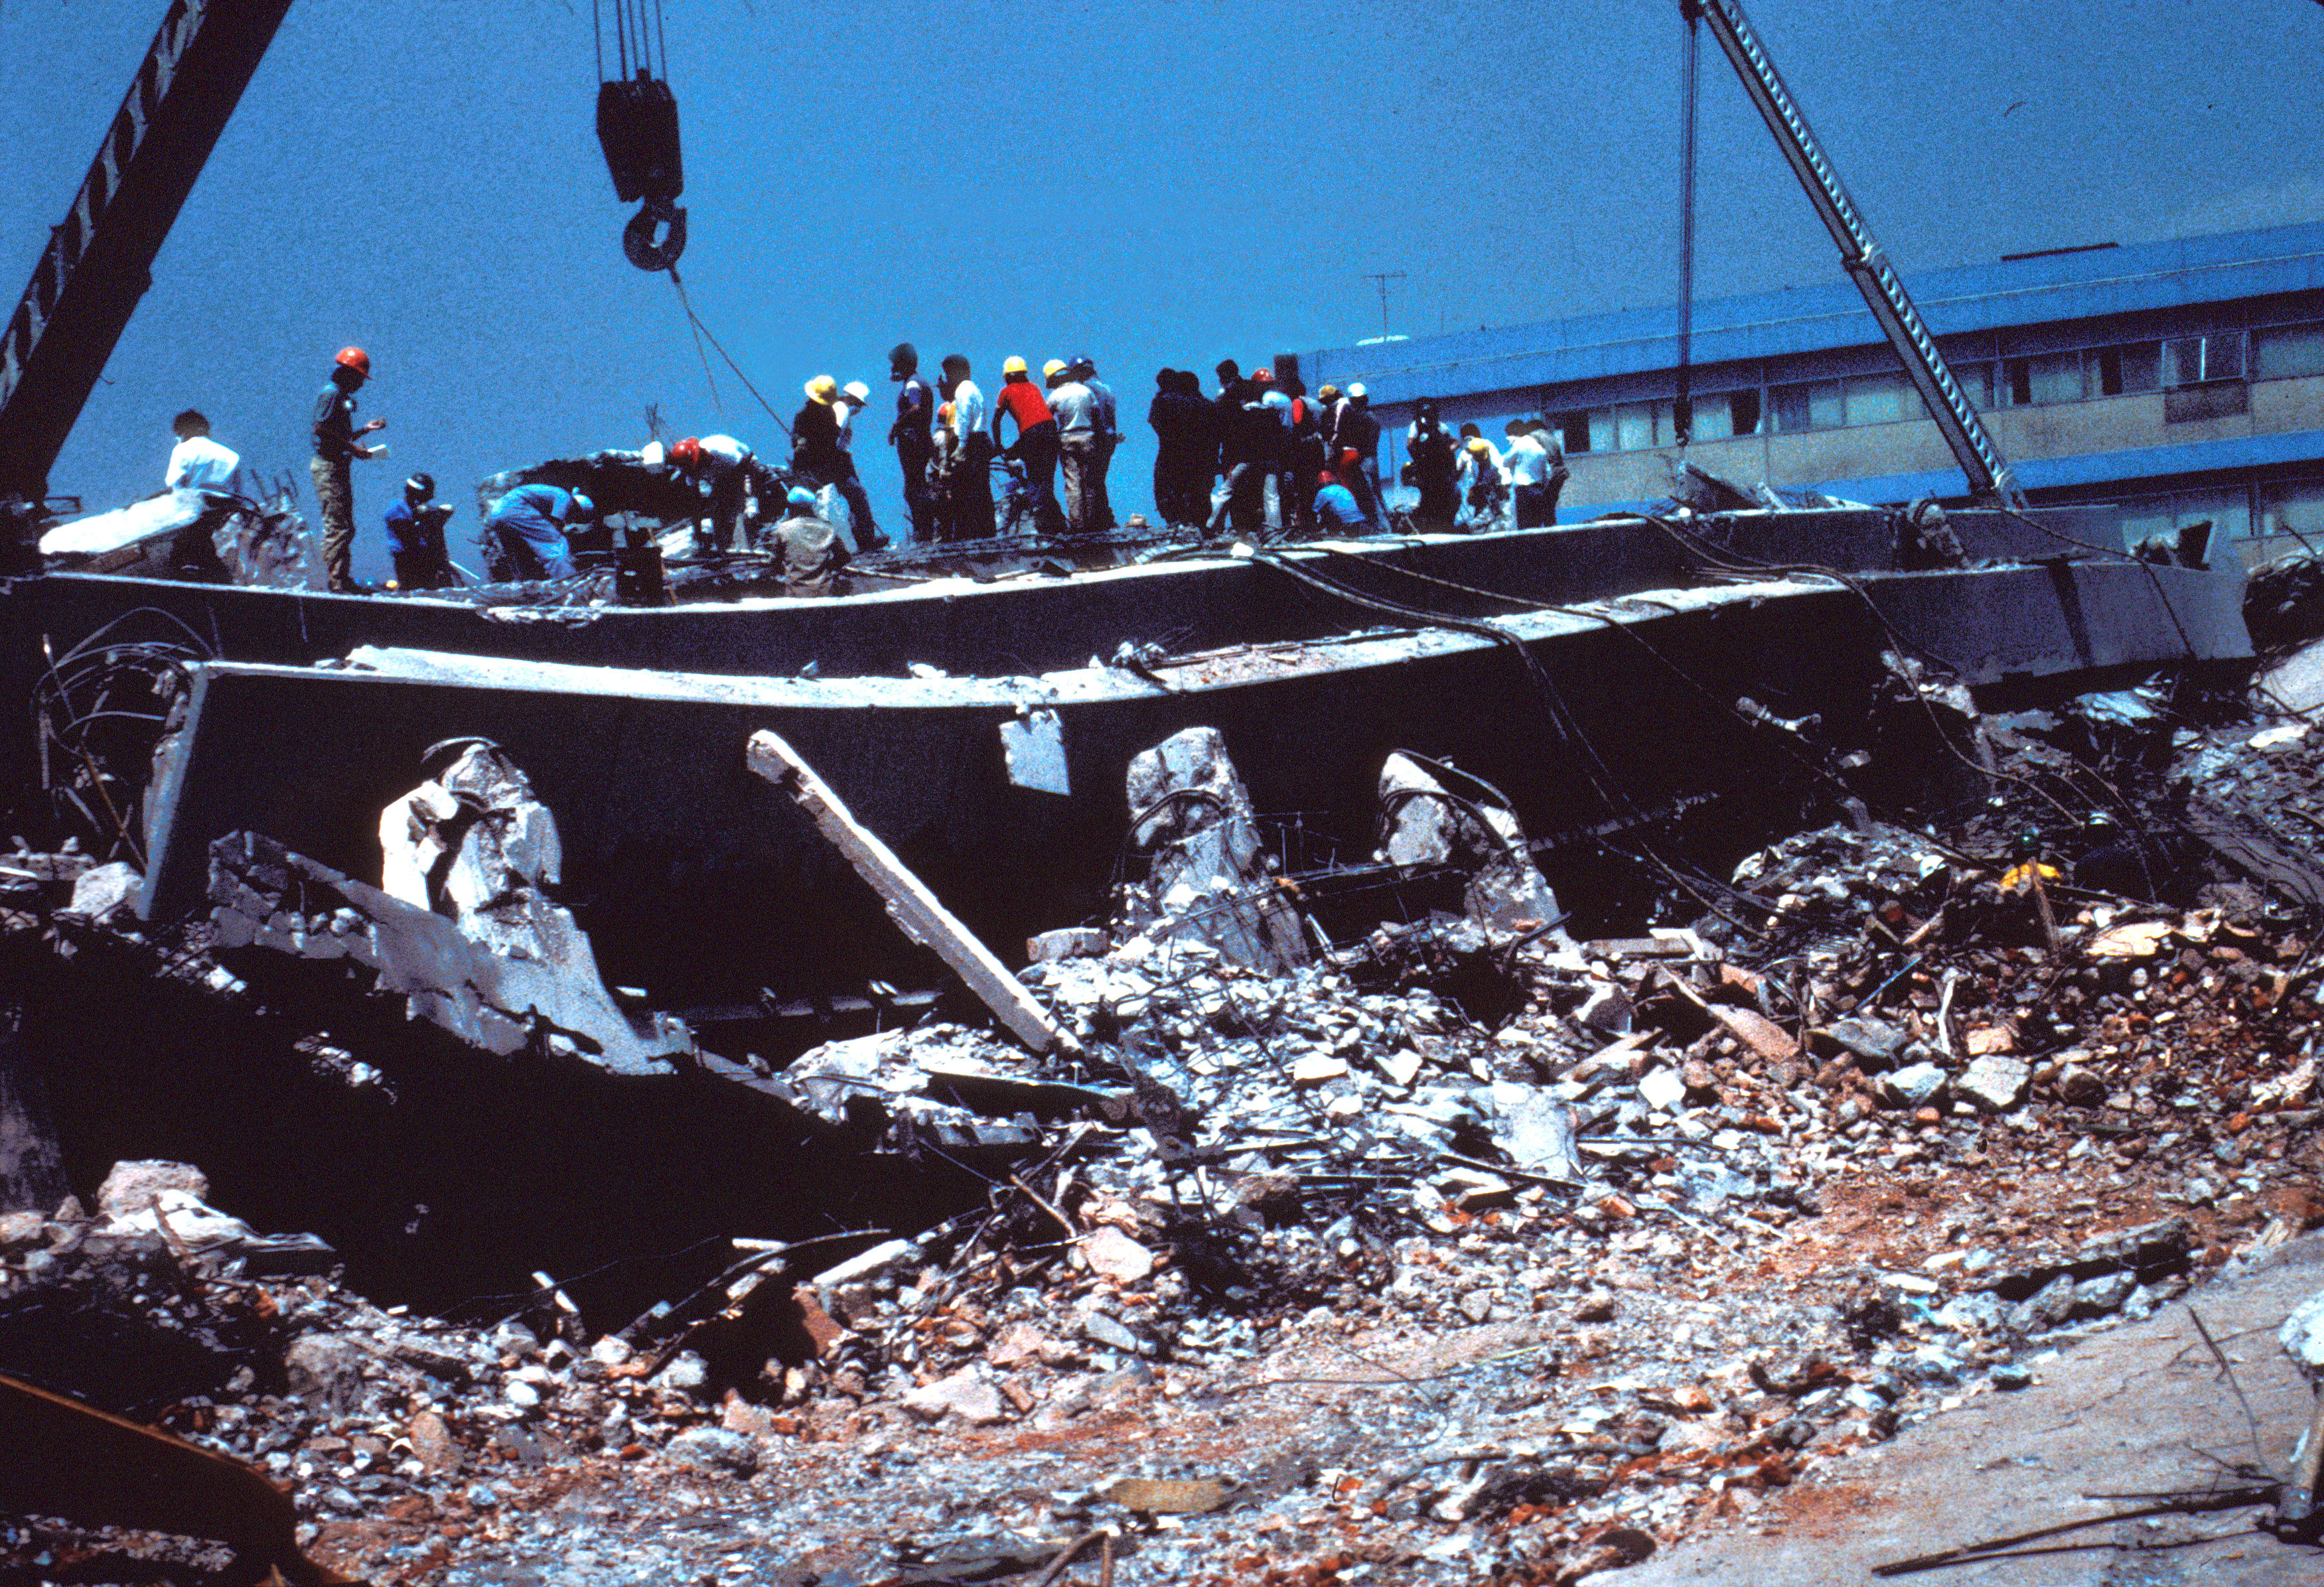 File:1985 Mexico Earthquake - Collapsed General Hospital ...